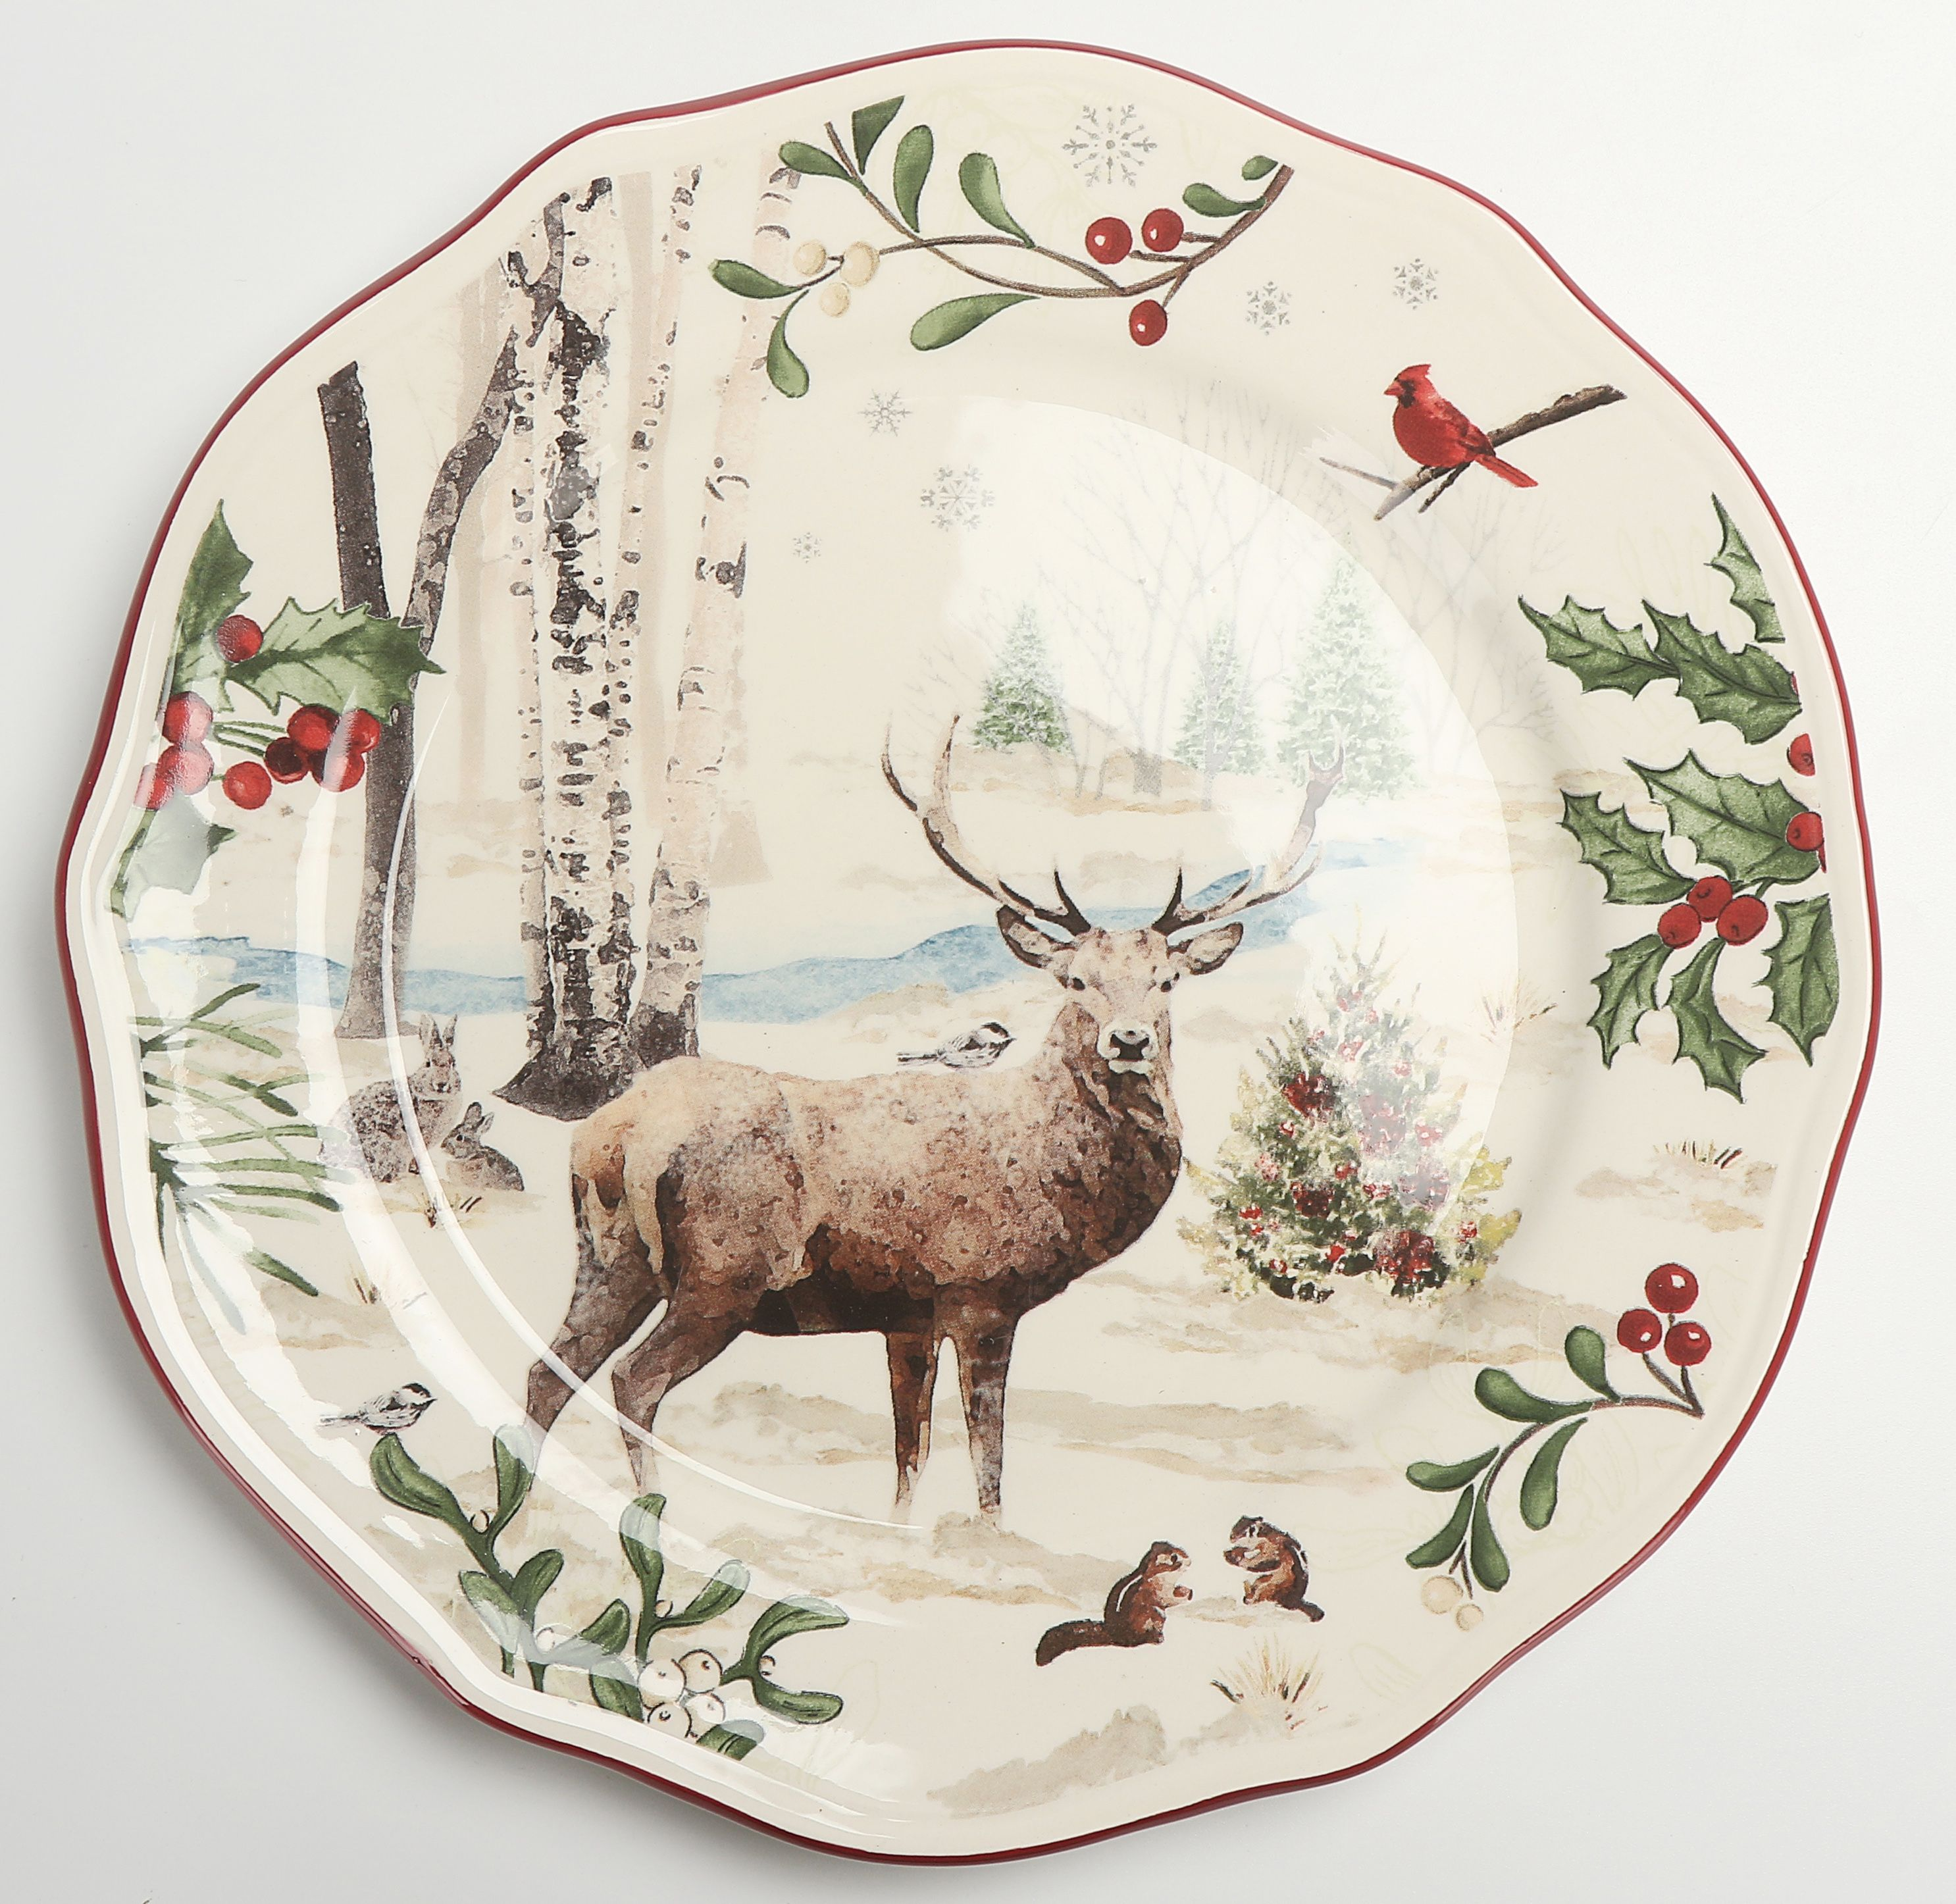 e67ba54a094fdb06d4324751cf150499 - Better Homes And Gardens Christmas Dishes 2018